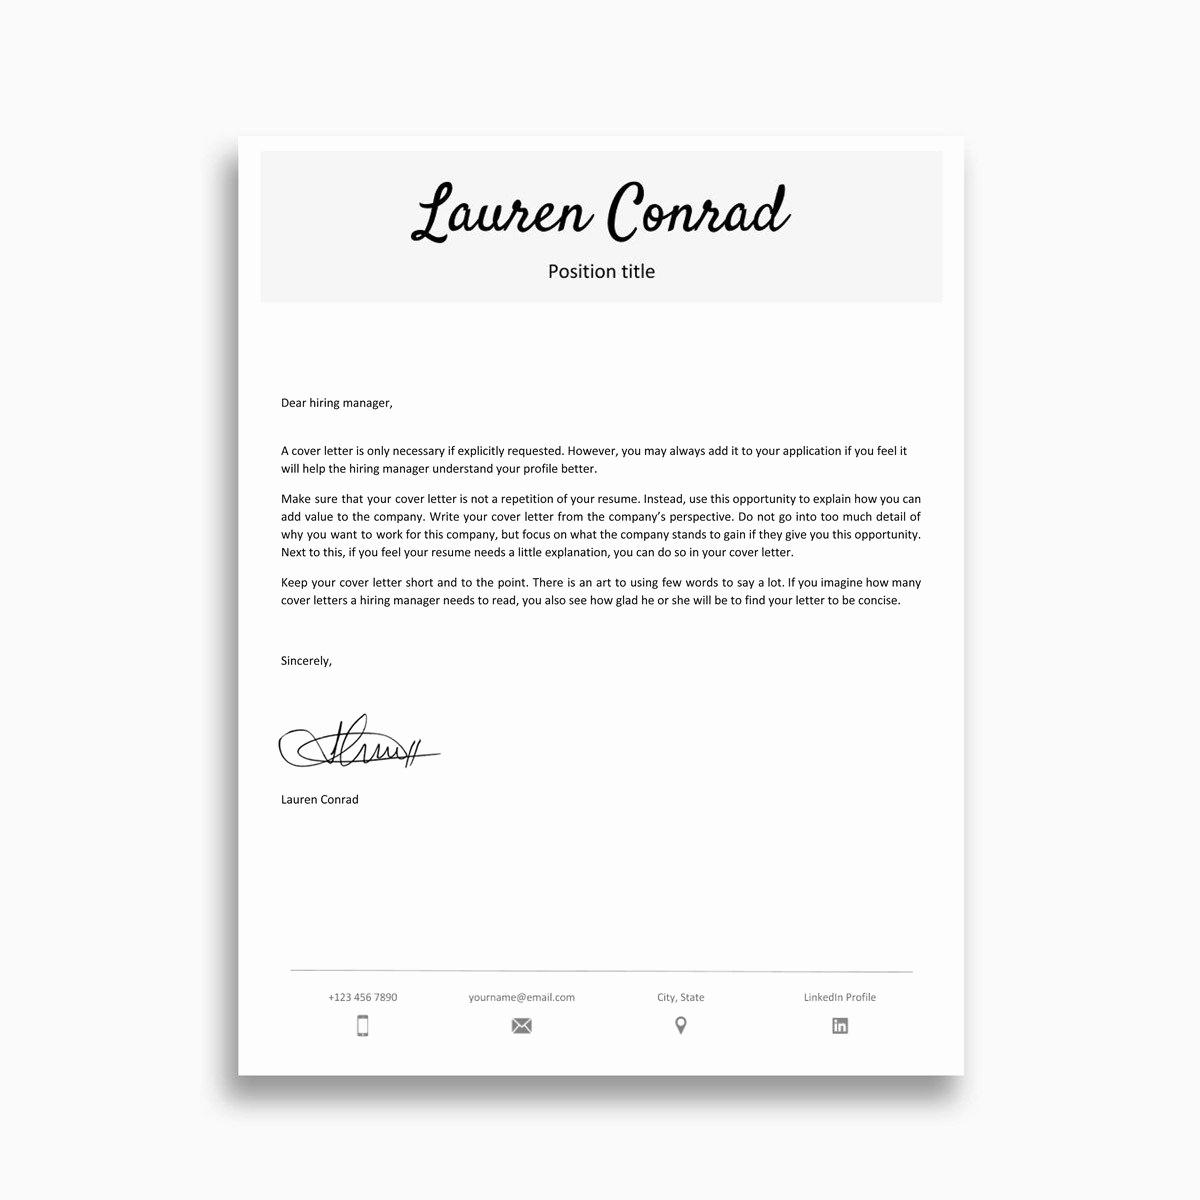 Google Cover Letter Template Inspirational Google Docs Cover Letter Templates 9 Examples to Download now